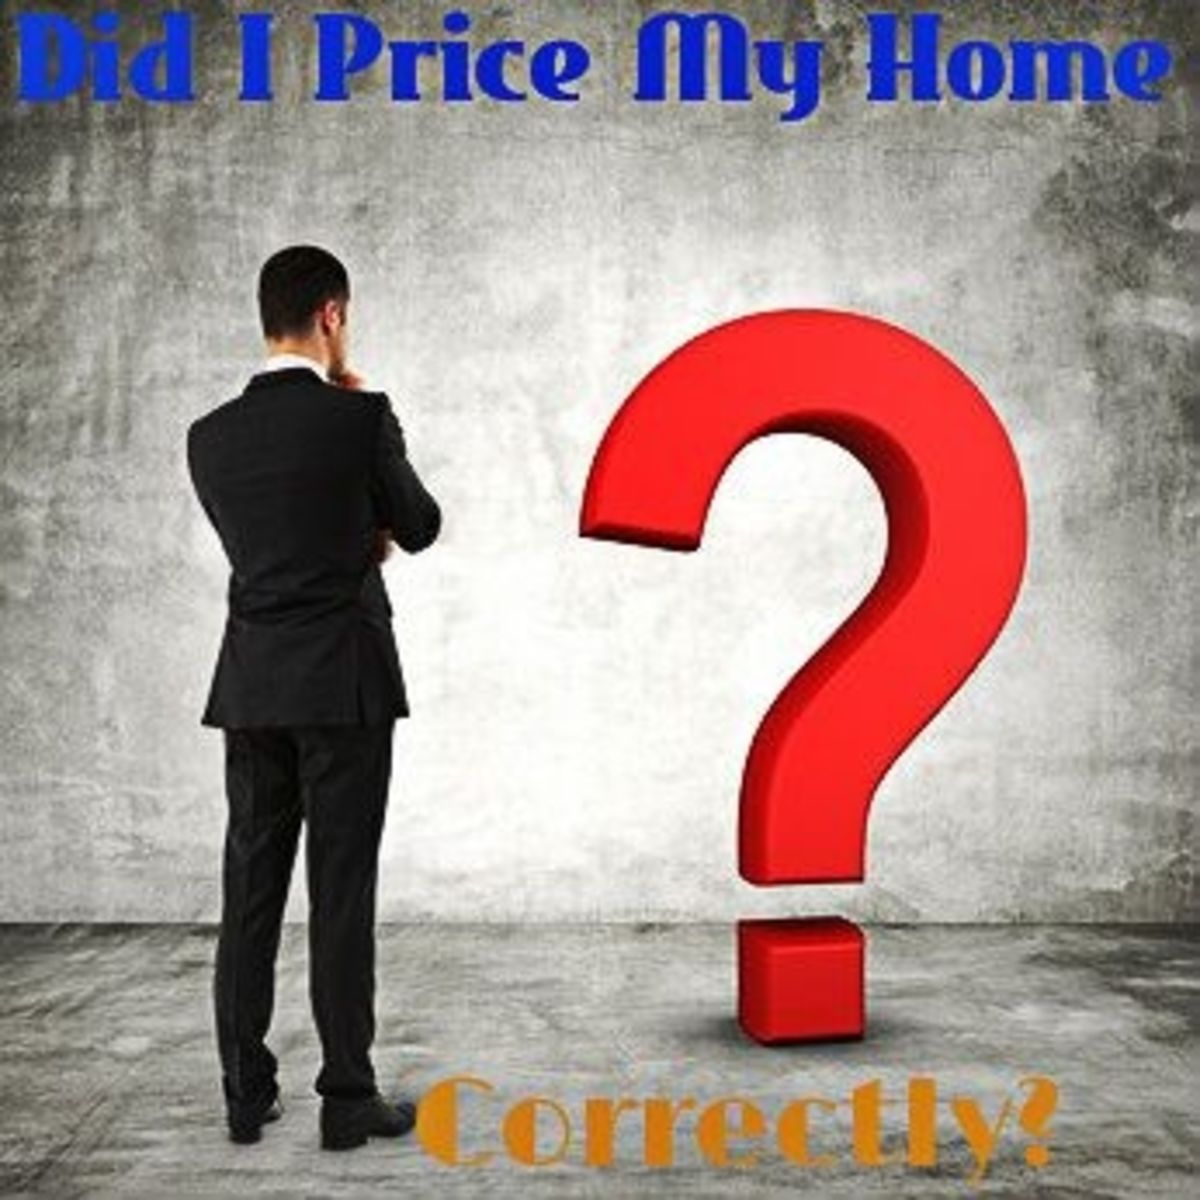 Headline for Top 10 Articles on Pricing a Home For Sale